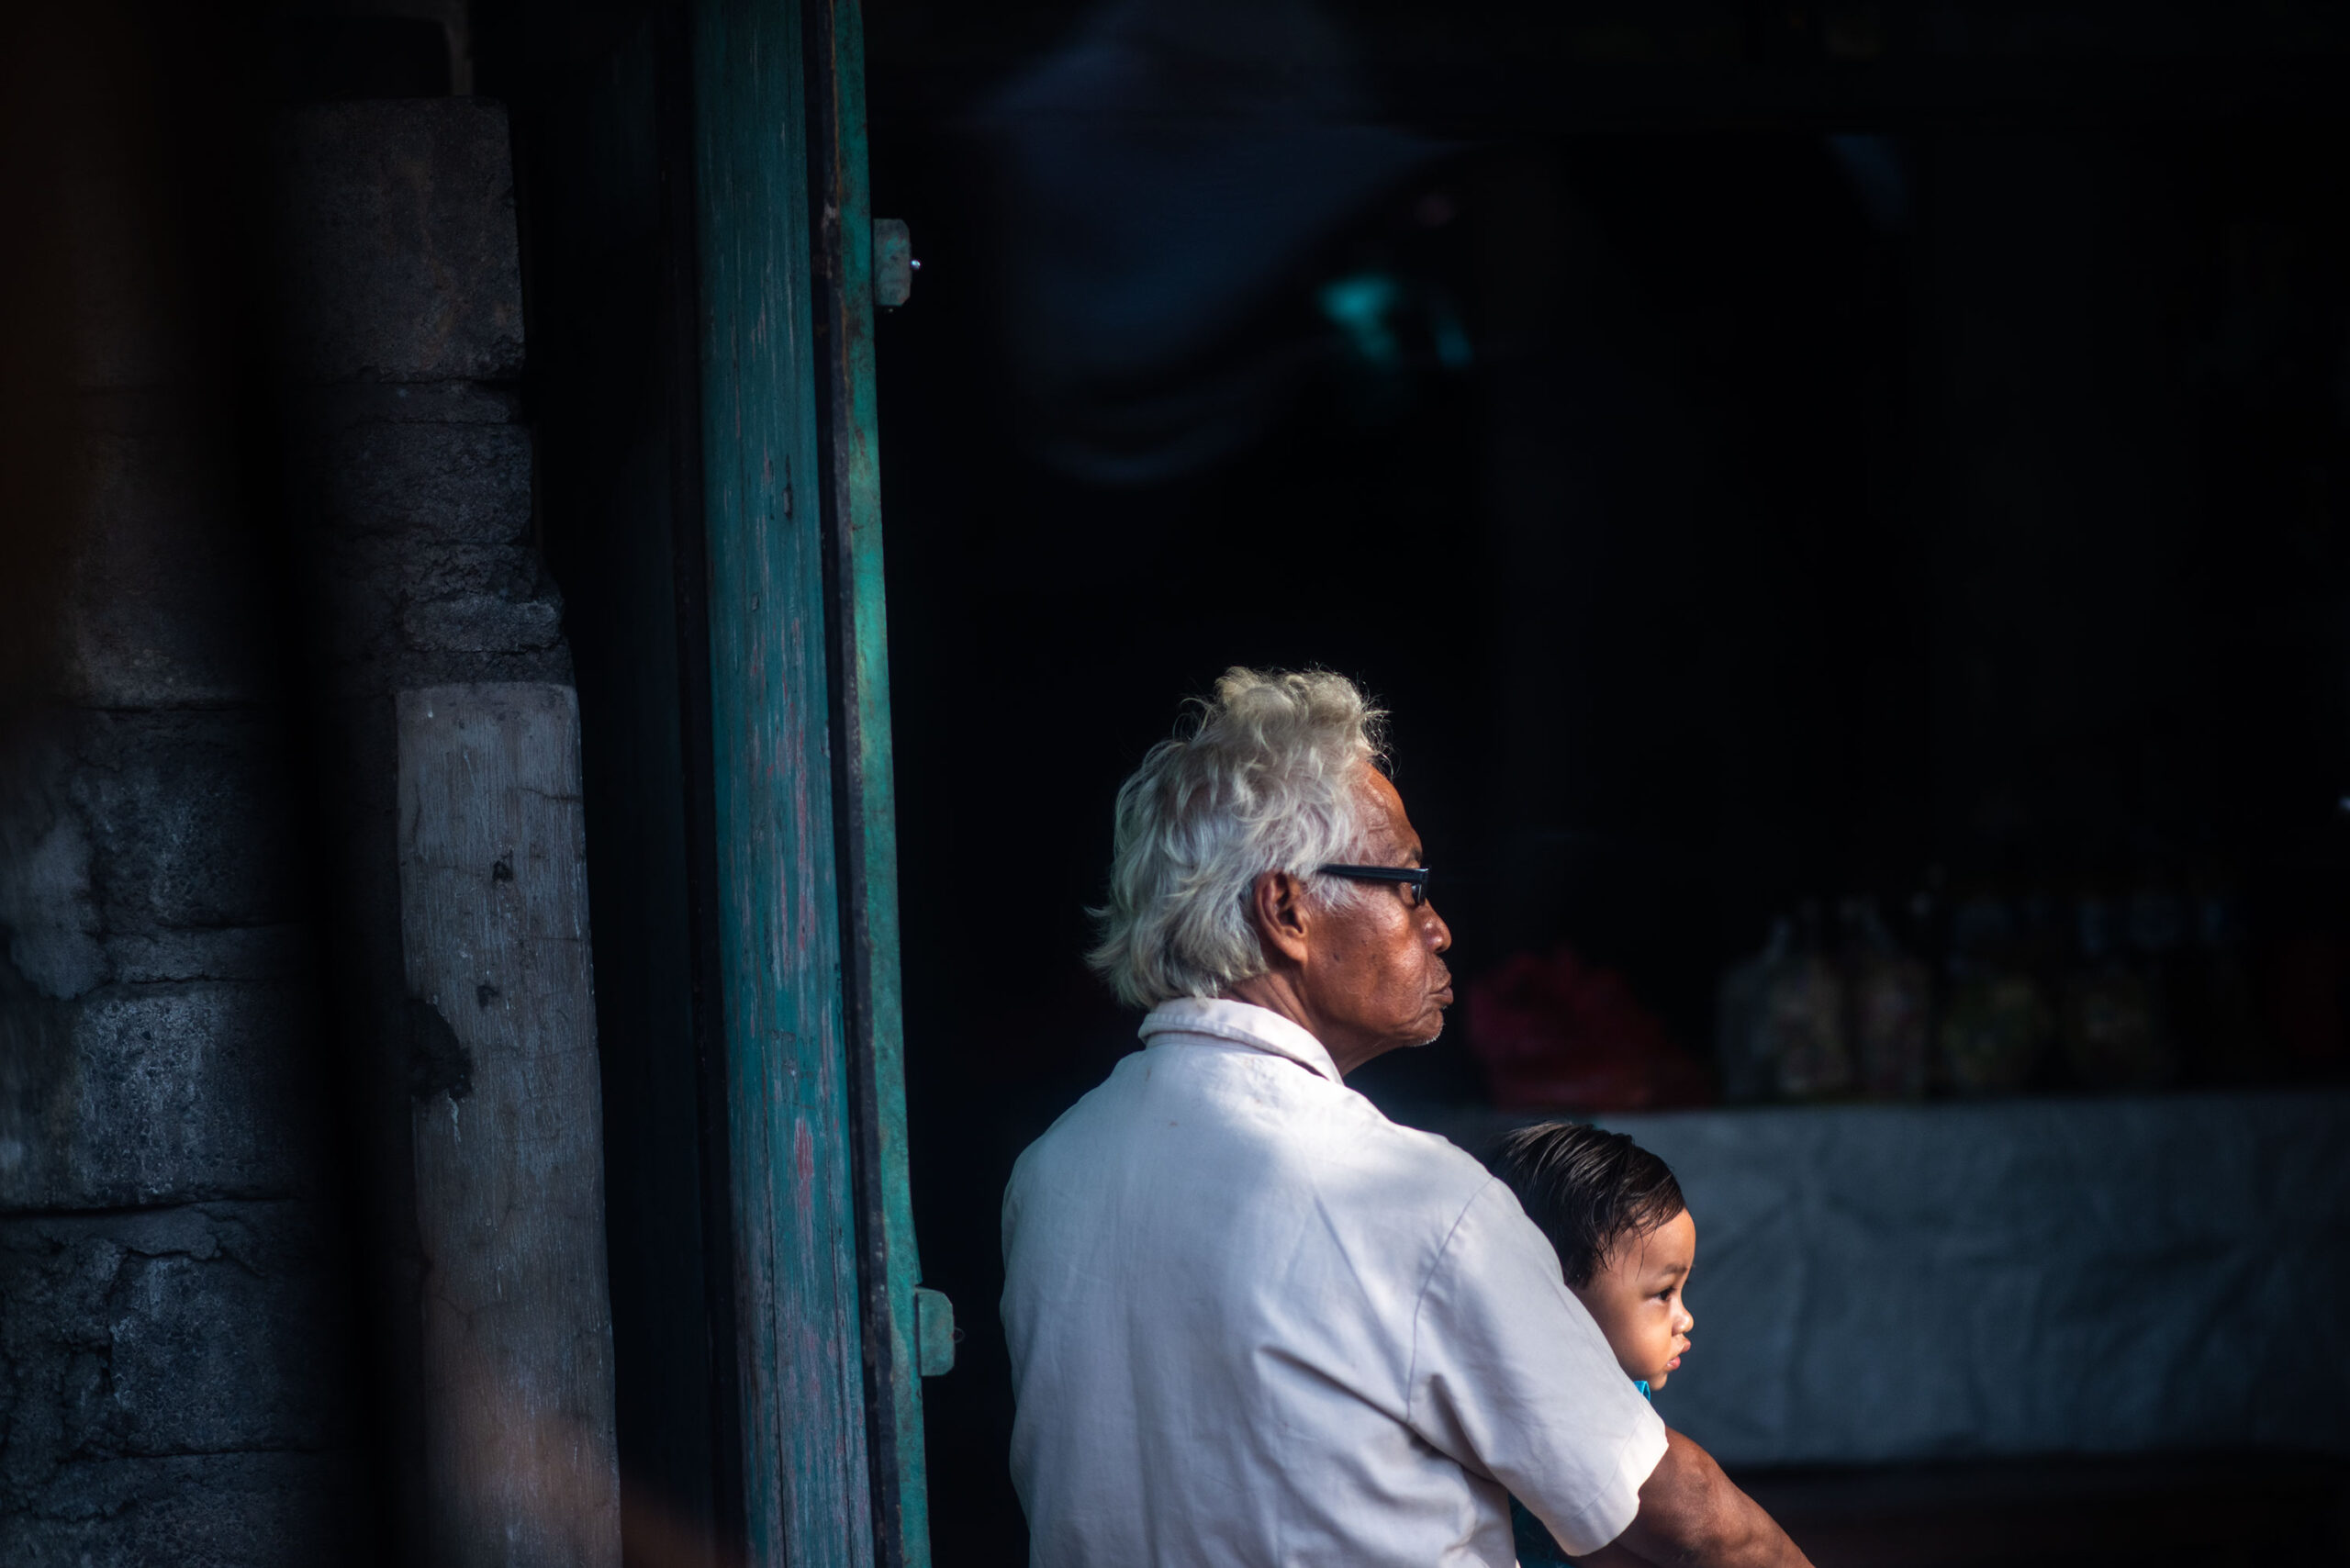 Grand pa and his grand child sit at the entrance of their home looking at the street, in Bali.